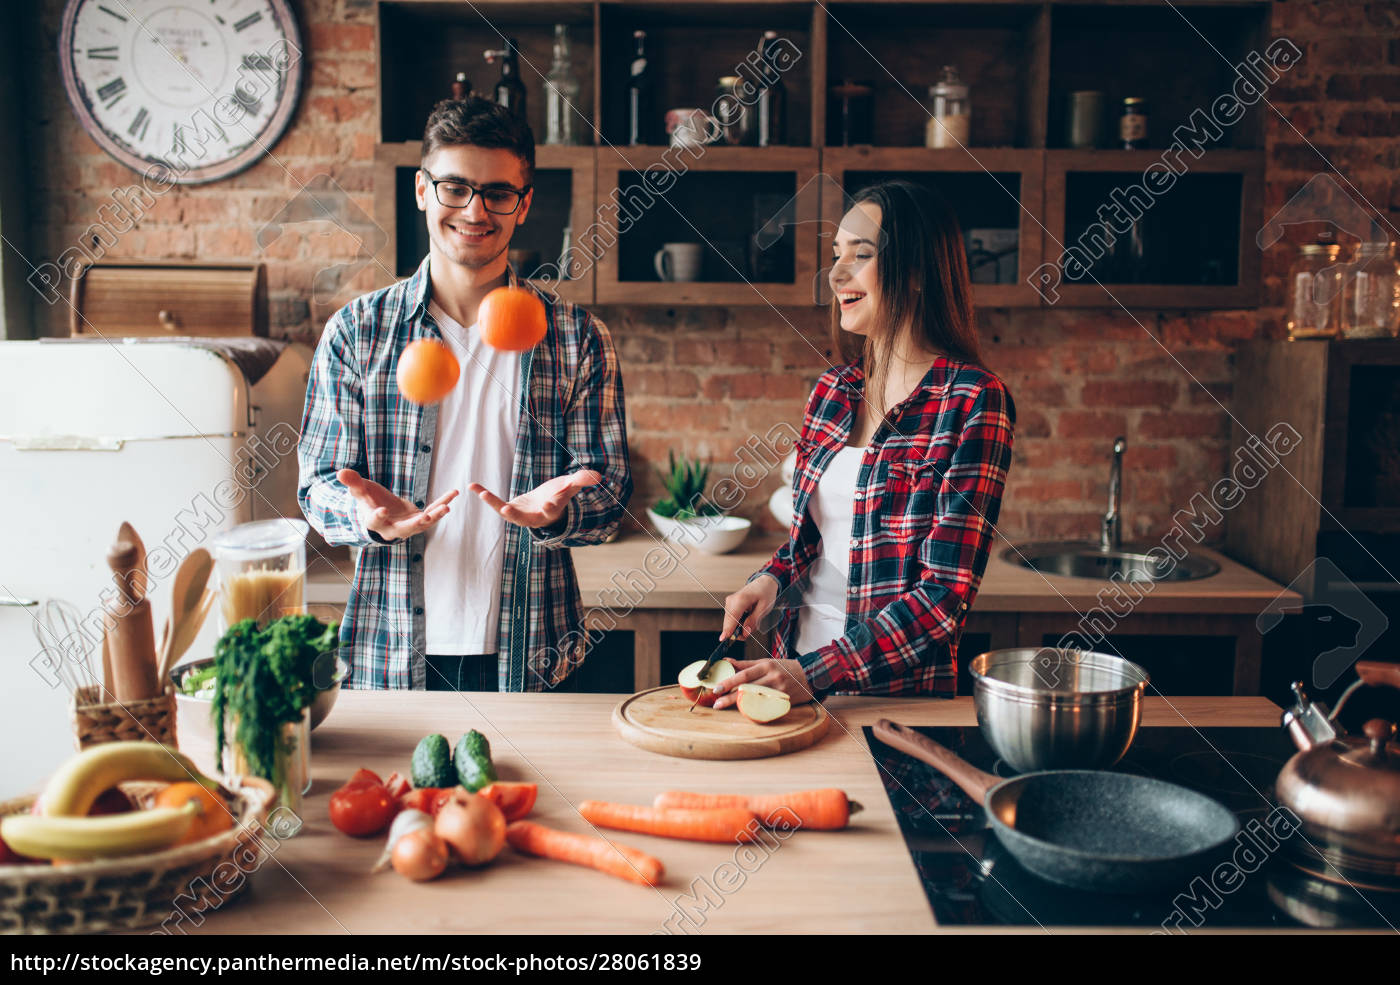 husband, juggles, oranges, while, wife, cooking - 28061839